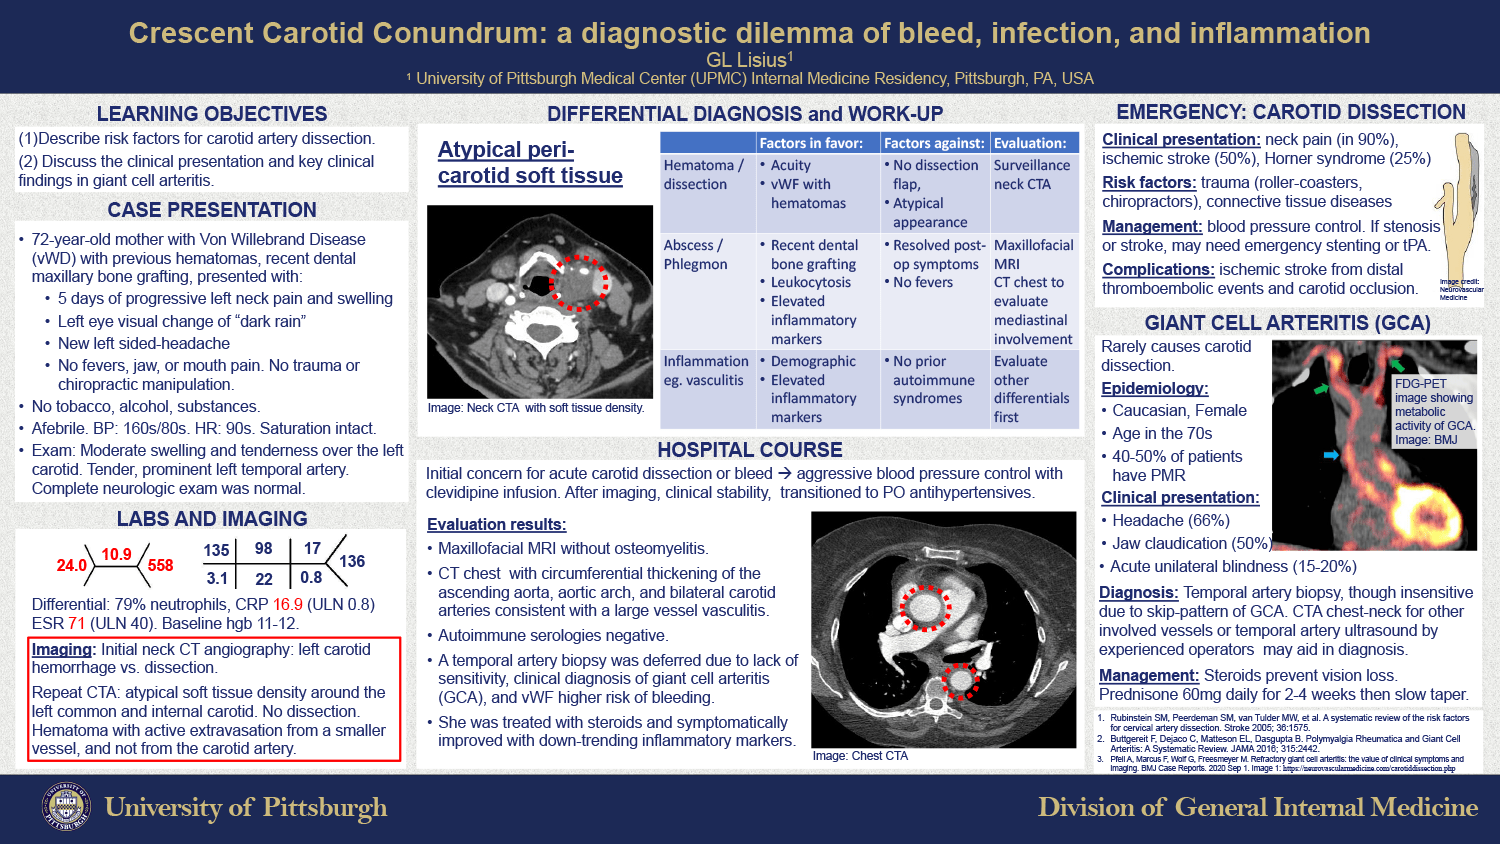 Grace Lisius - PAW-18-Carotid-Crescent-Conundrum-Diagnostic-Dilemma-of-Bleed-Infection-Inflammation